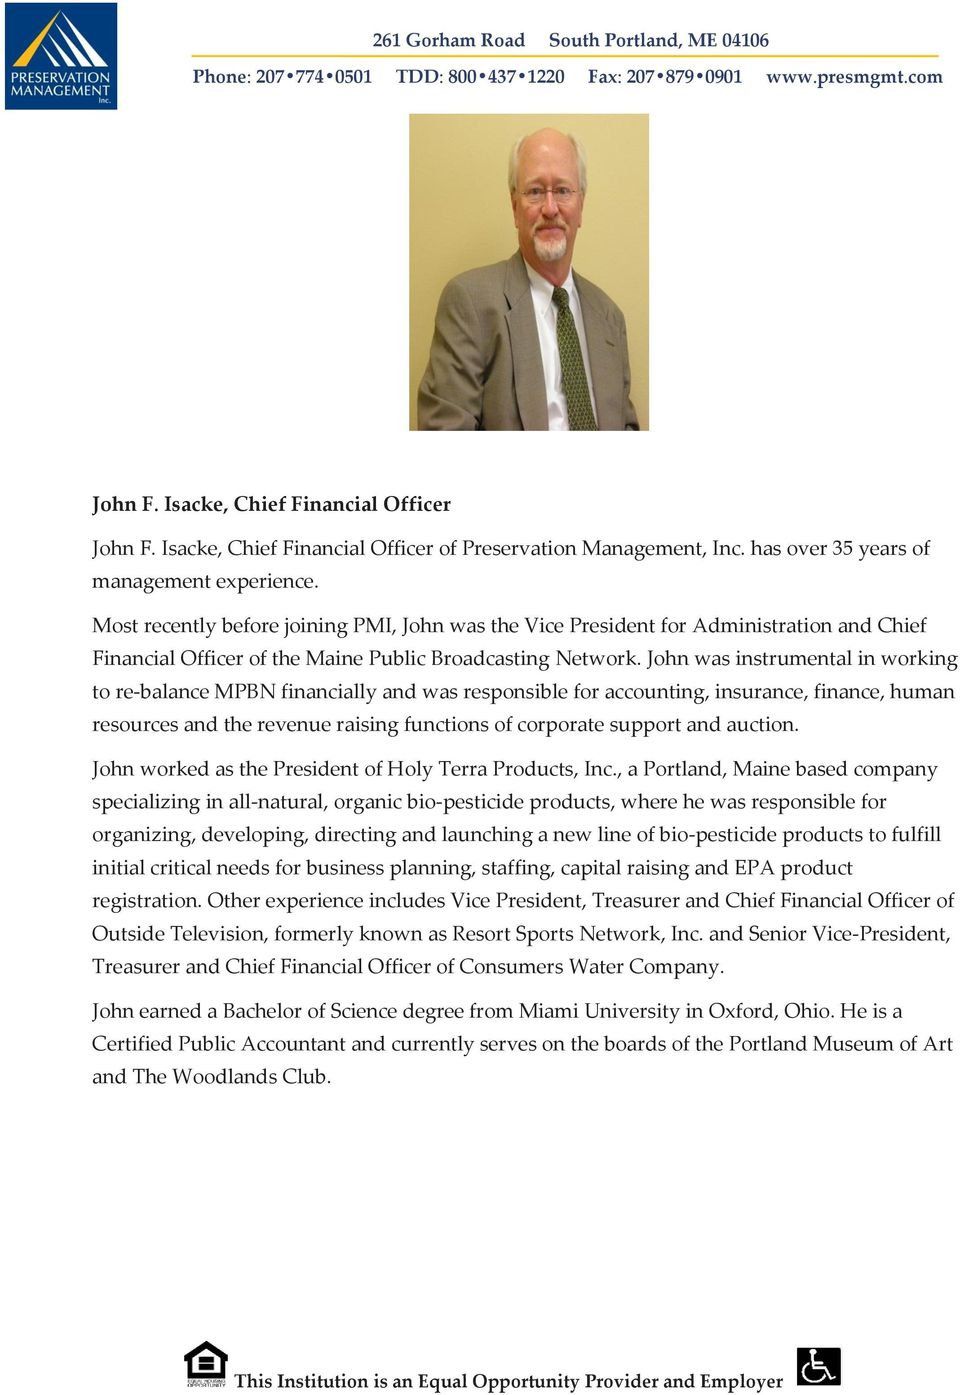 John was instrumental in working to re-balance MPBN financially and was responsible for accounting, insurance, finance, human resources and the revenue raising functions of corporate support and